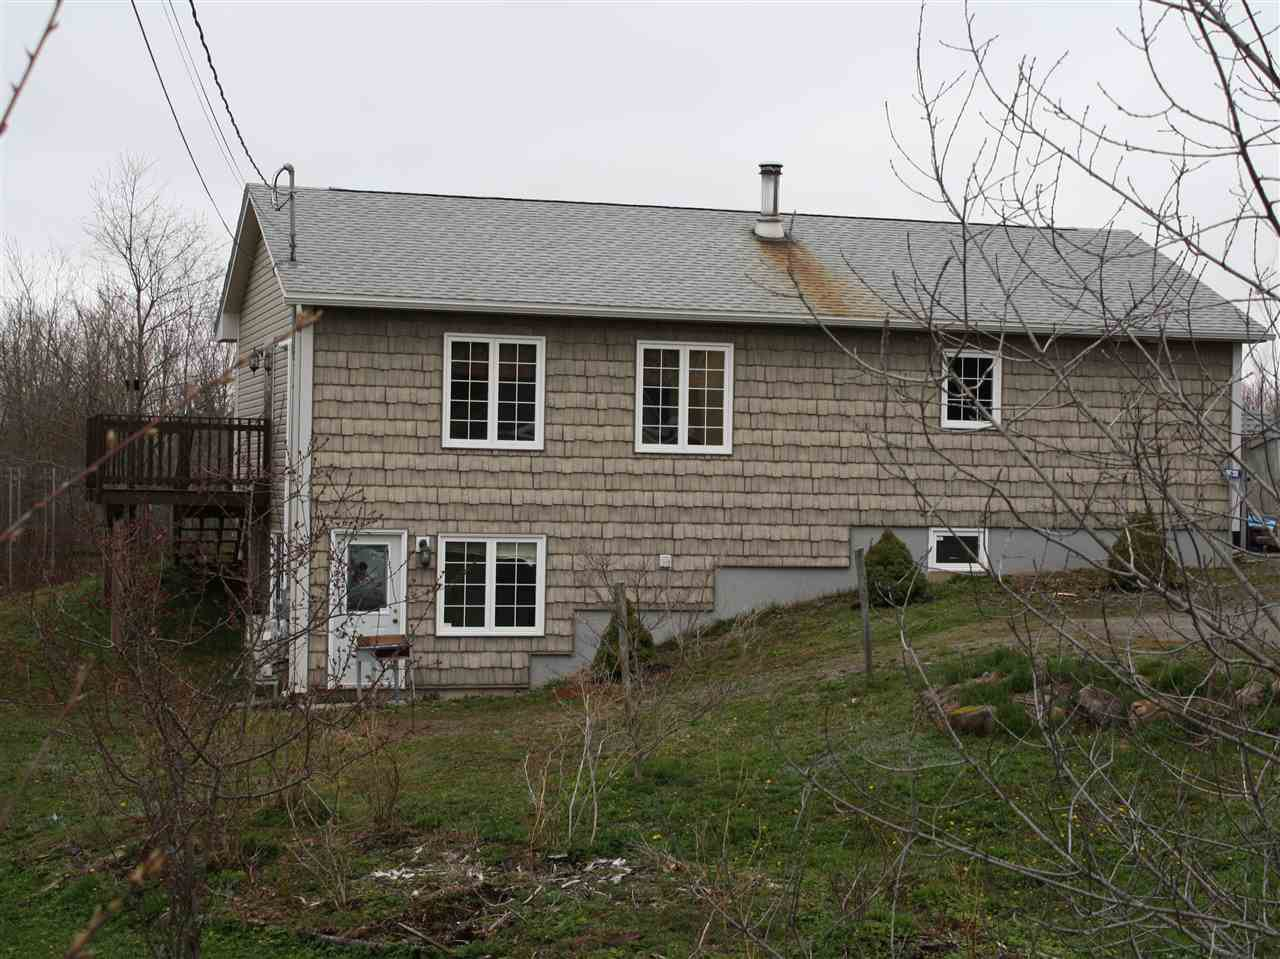 Main Photo: 966 Elizabeth Drive in North Kentville: 404-Kings County Residential for sale (Annapolis Valley)  : MLS®# 201826253